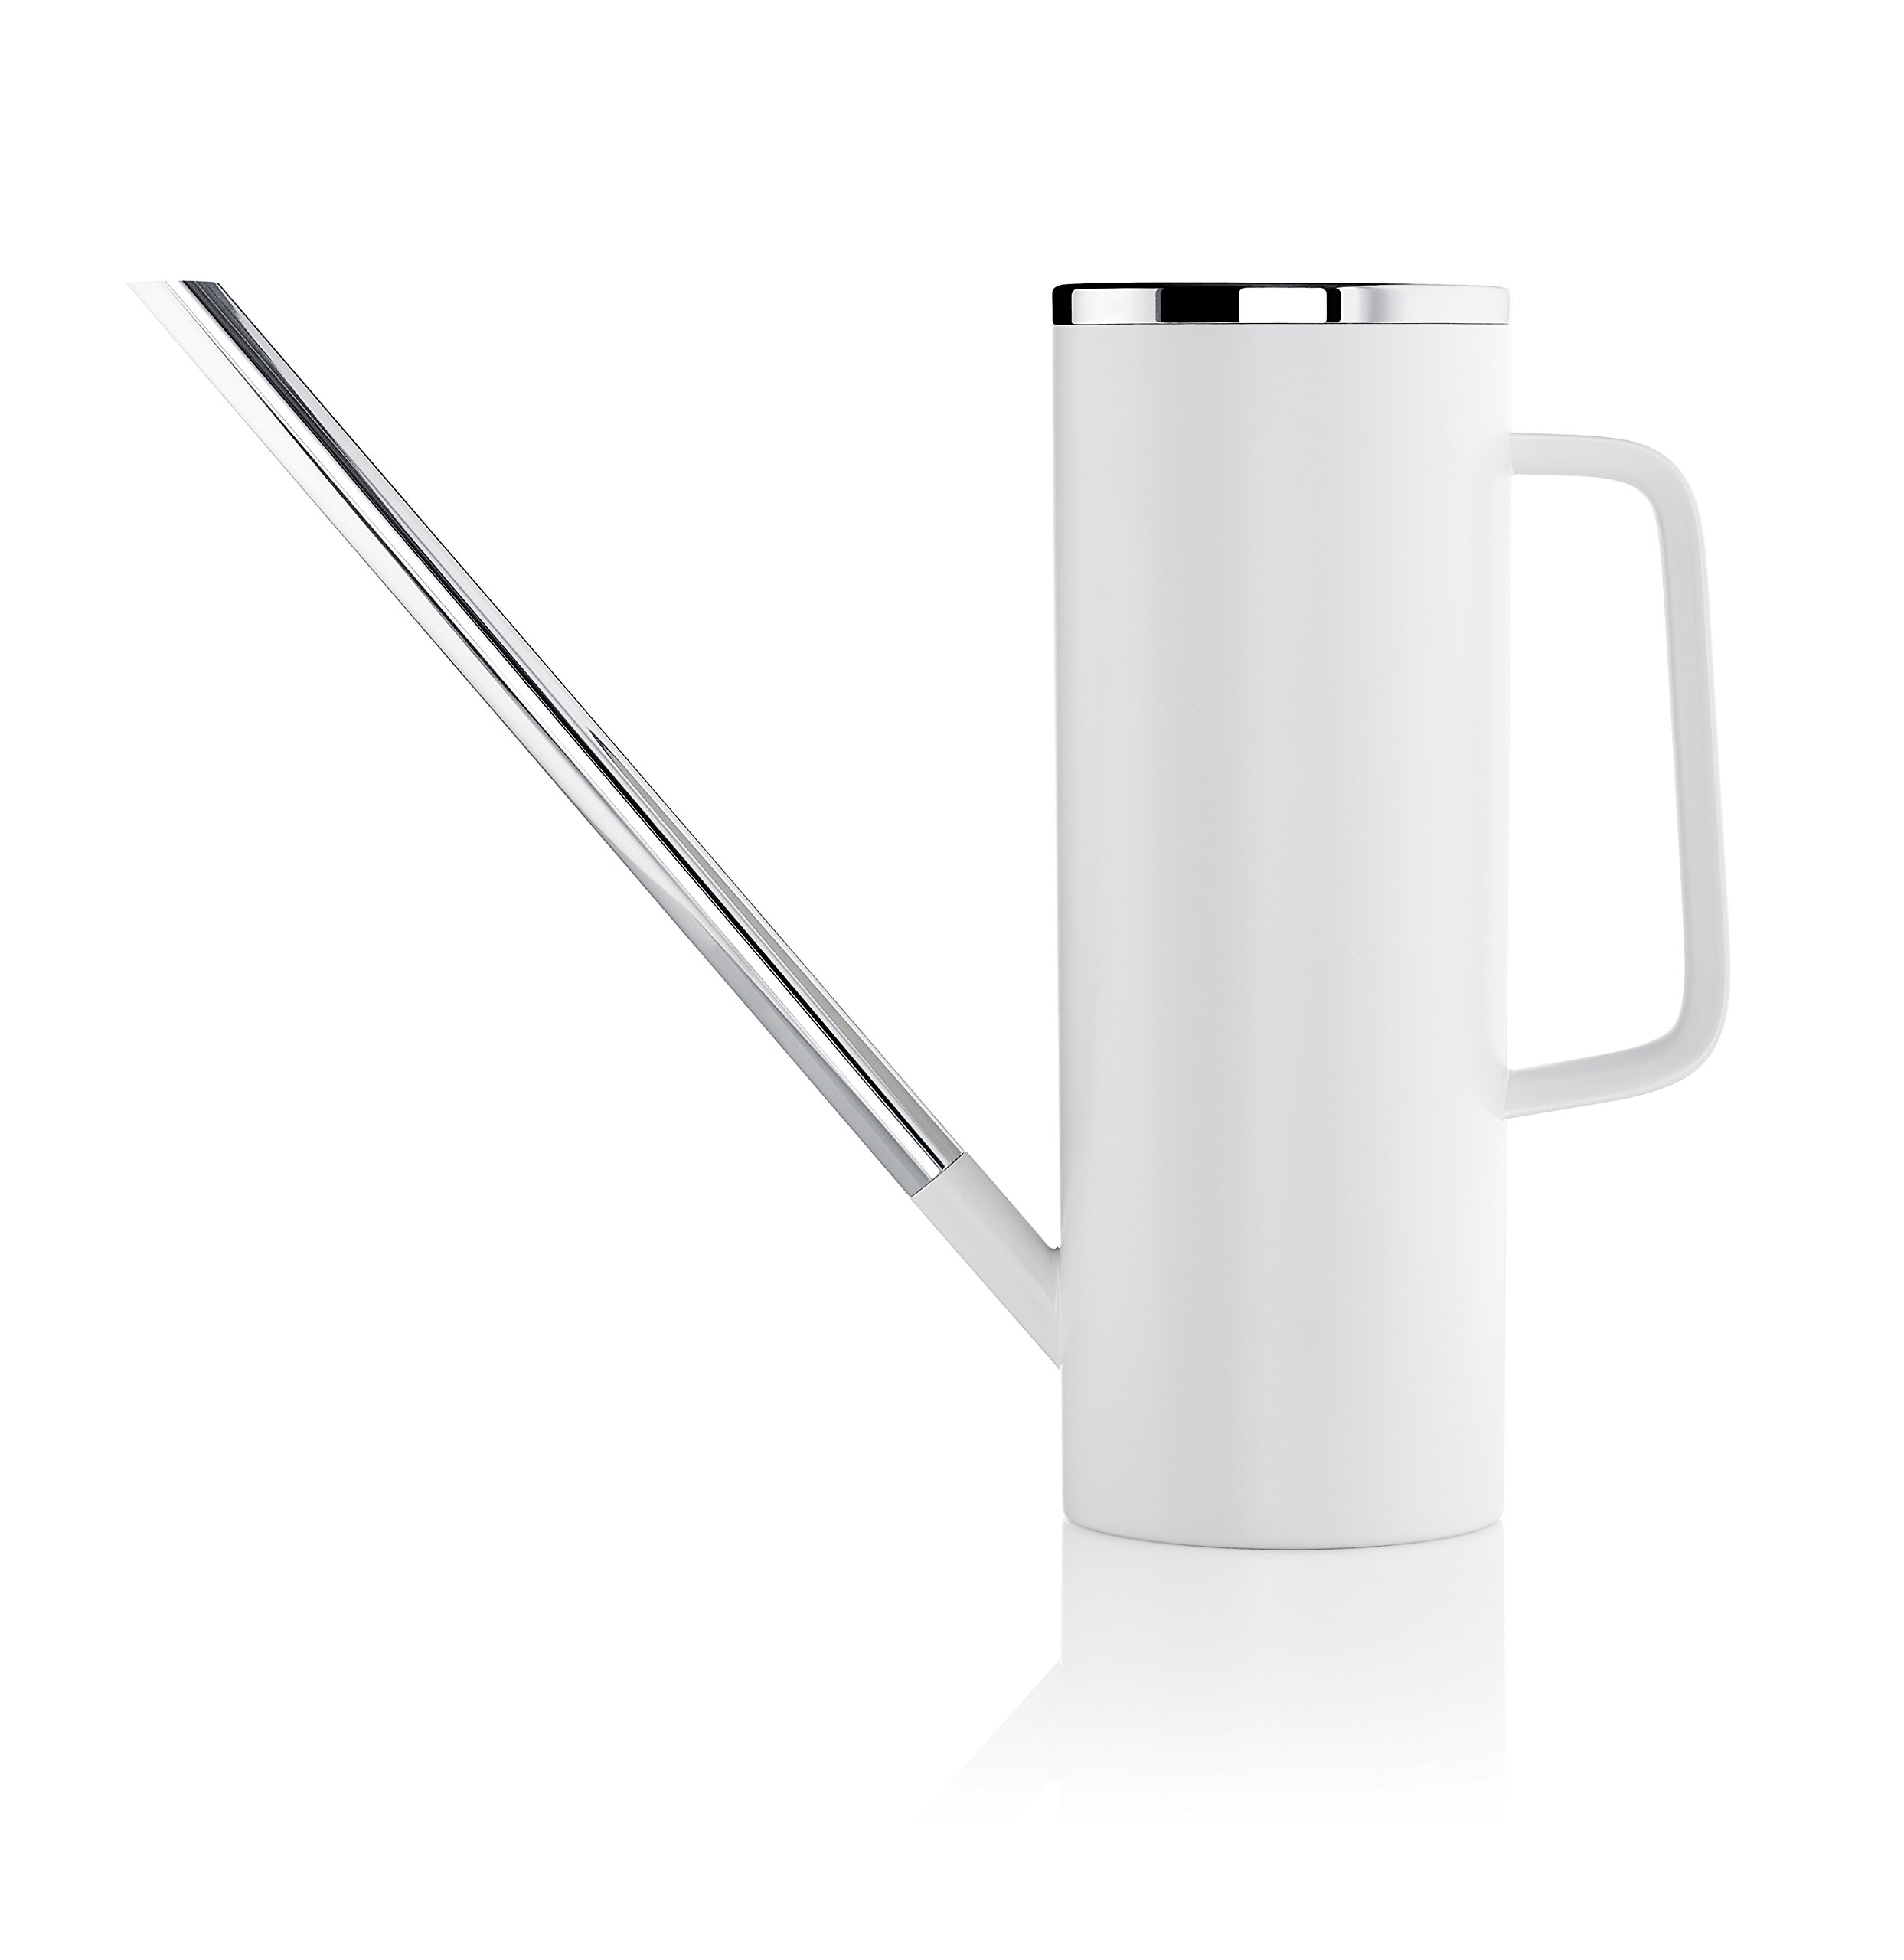 Blomus Limbo White Watering Can 1.5 Liter, 1.5 L by Blomus